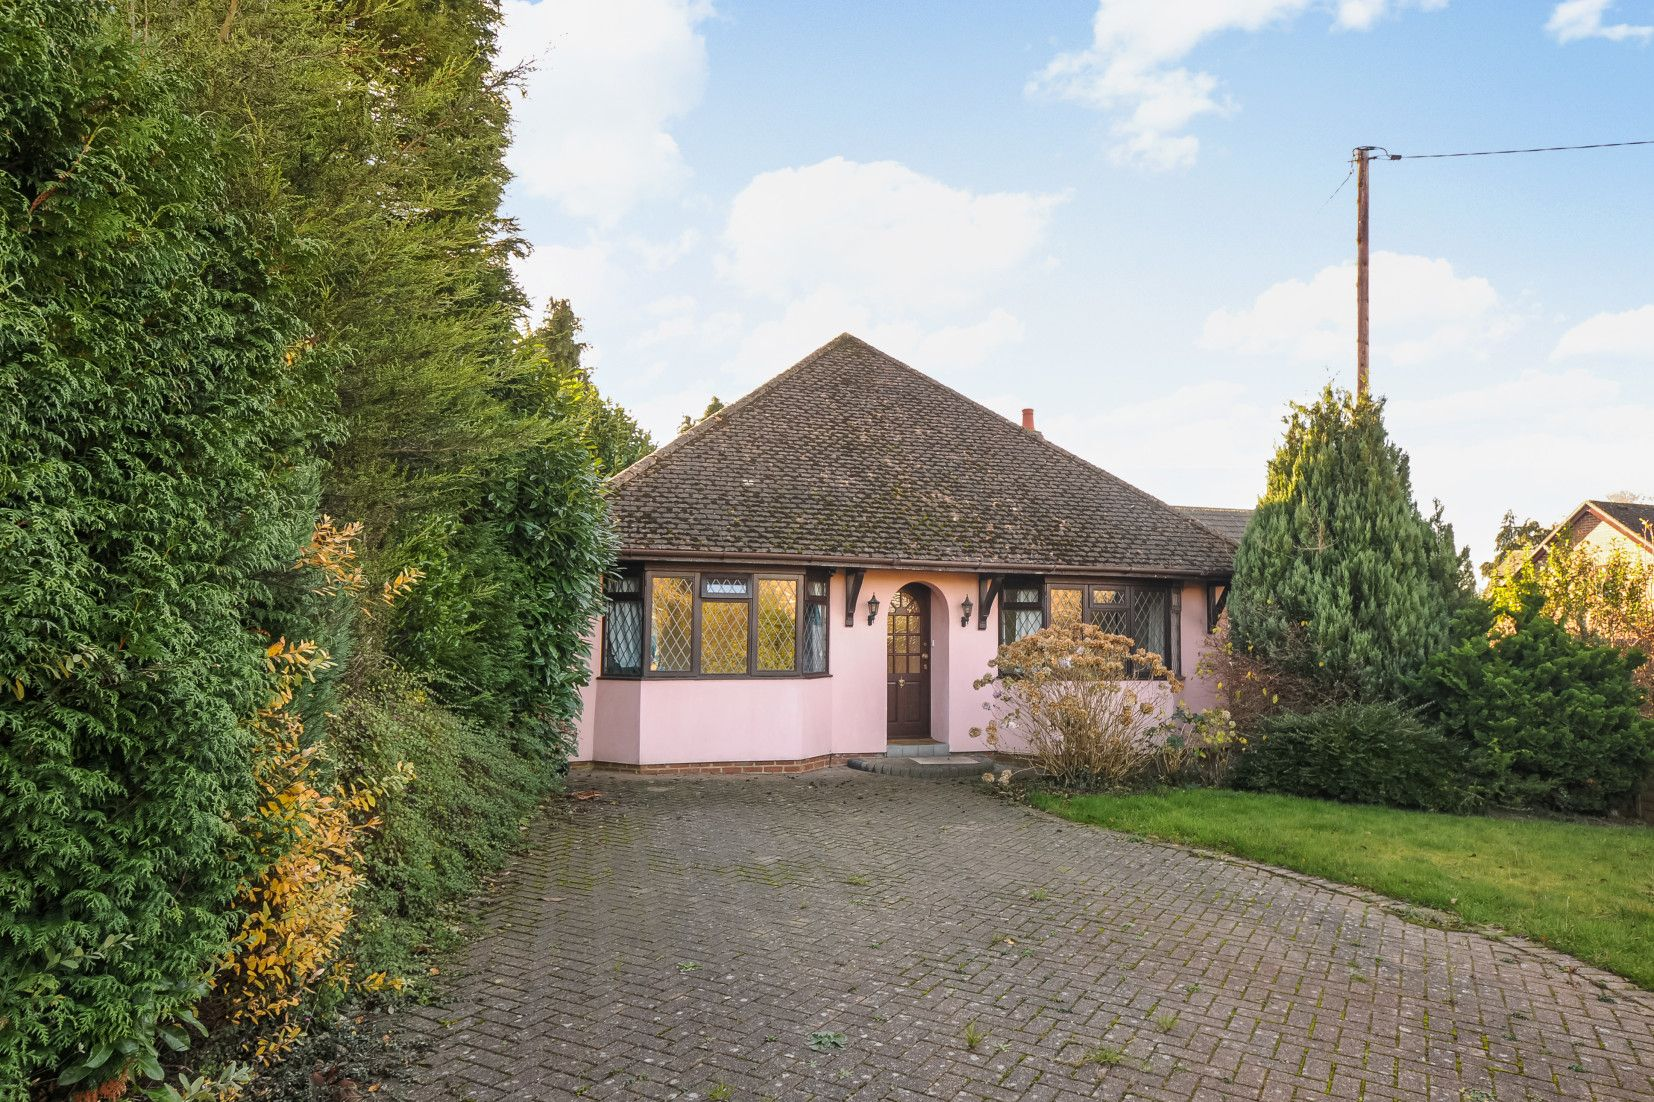 Charming pink bungalow on sale for £400,000 in Reading